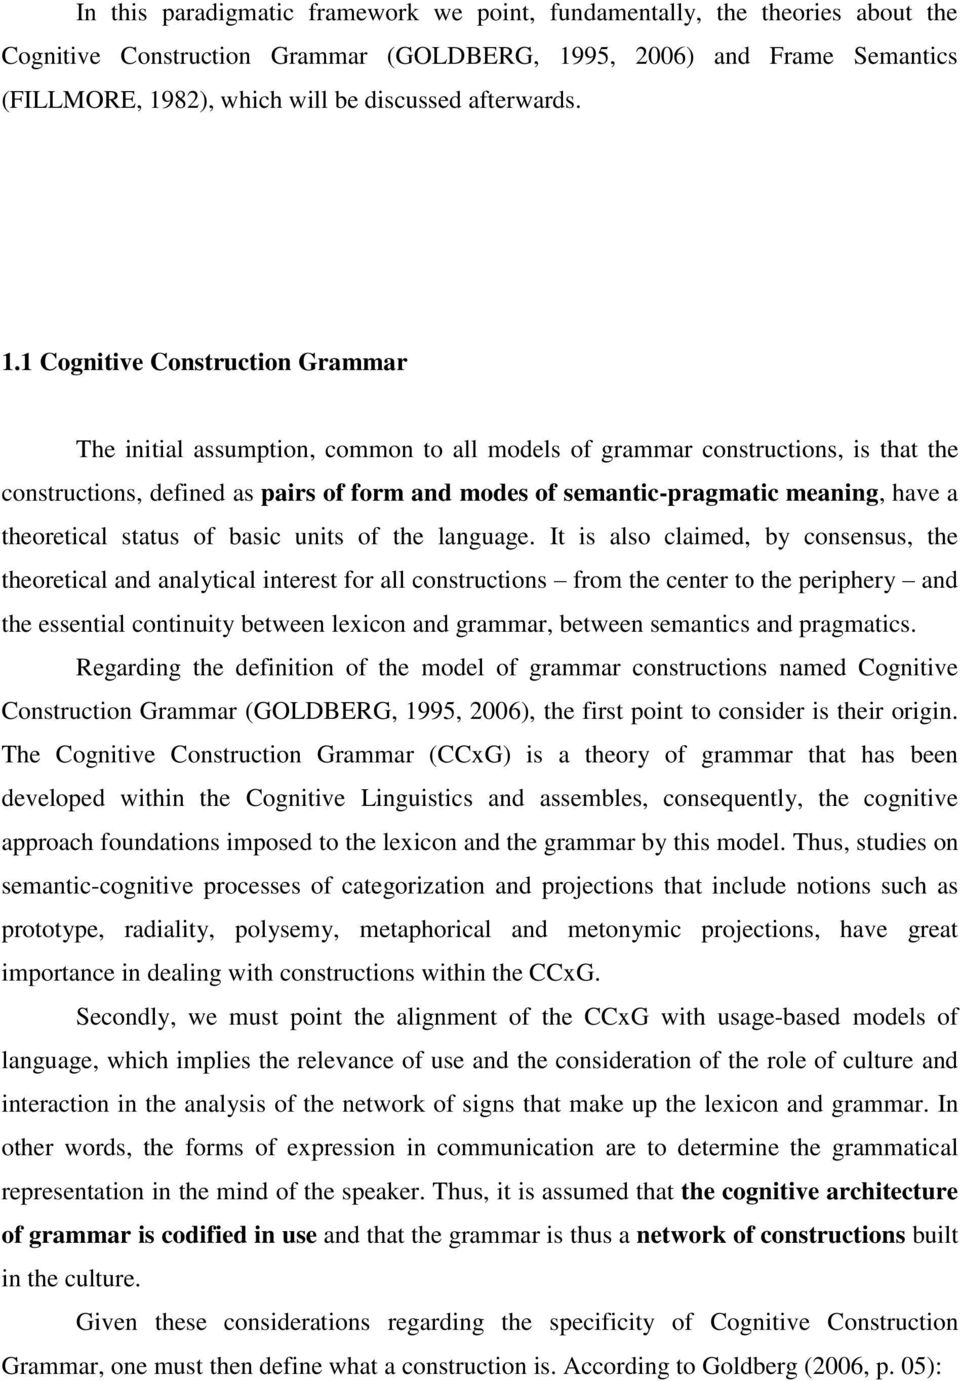 1 Cognitive Construction Grammar The initial assumption, common to all models of grammar constructions, is that the constructions, defined as pairs of form and modes of semantic-pragmatic meaning,